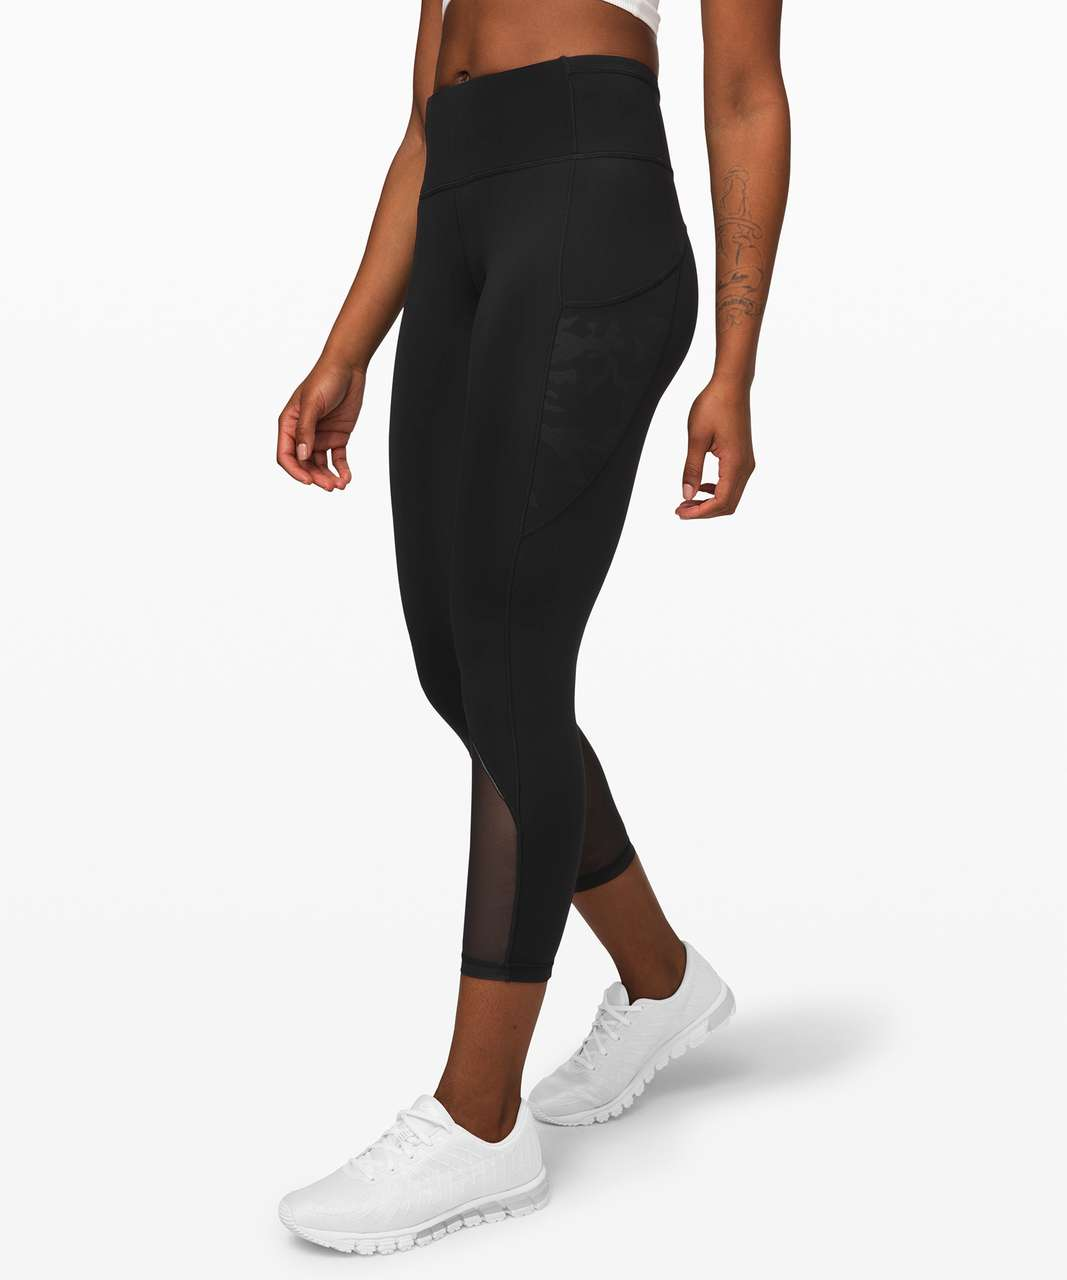 "Lululemon Fast and Free Crop 23"" *Mesh - Black / Incognito Camo Emboss Rotated Black"